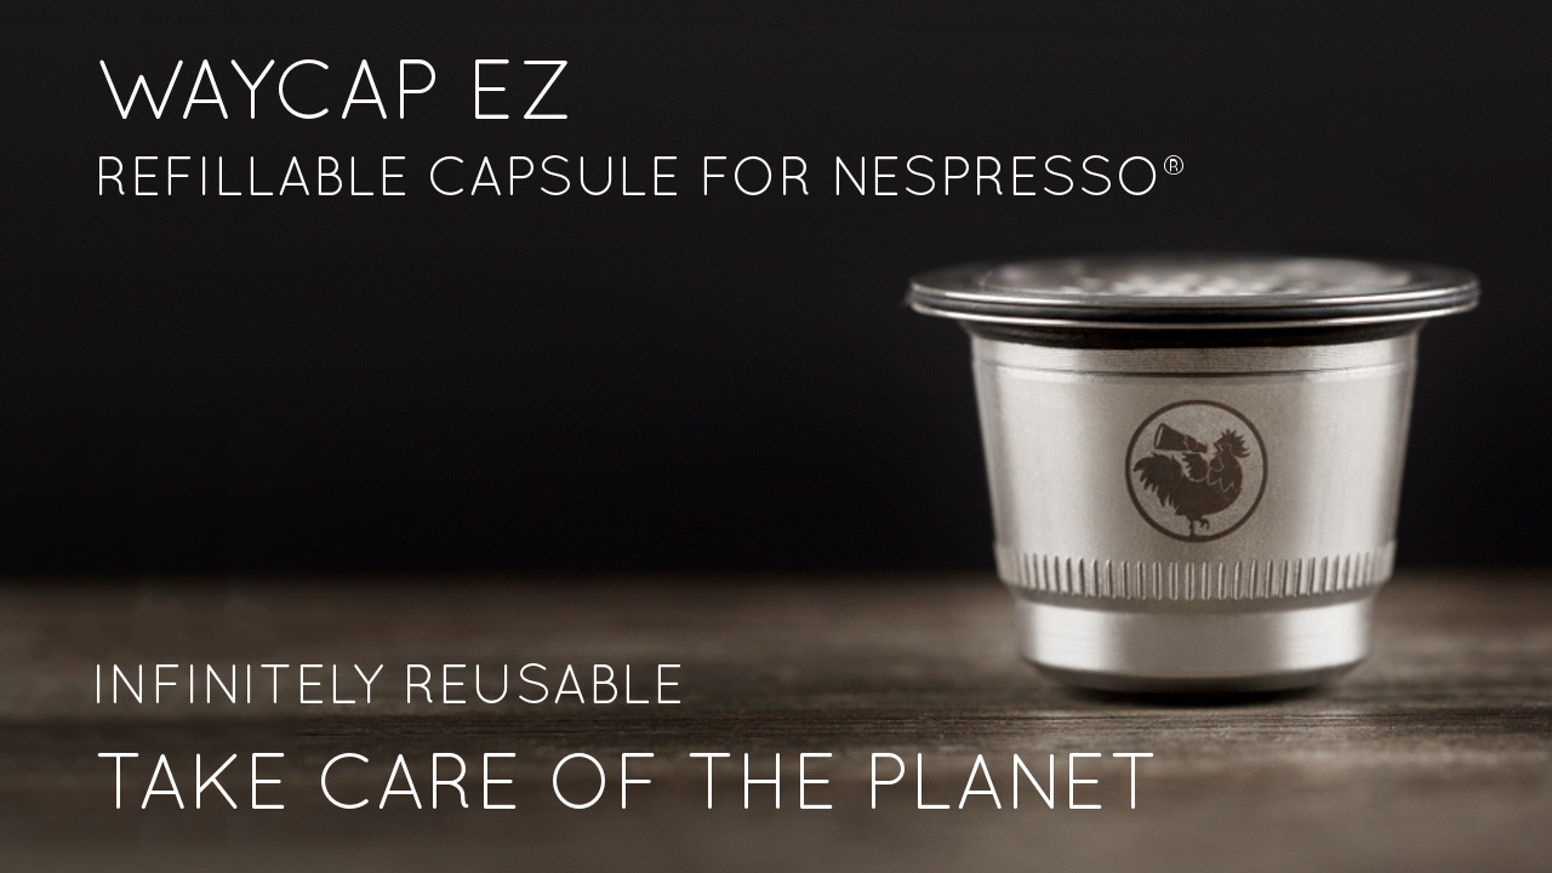 "Meet ""WayCap Ez"", the new coffee capsule compatible with Nespresso® system, in stainless steel, infinitely reusable and eco-friendly."